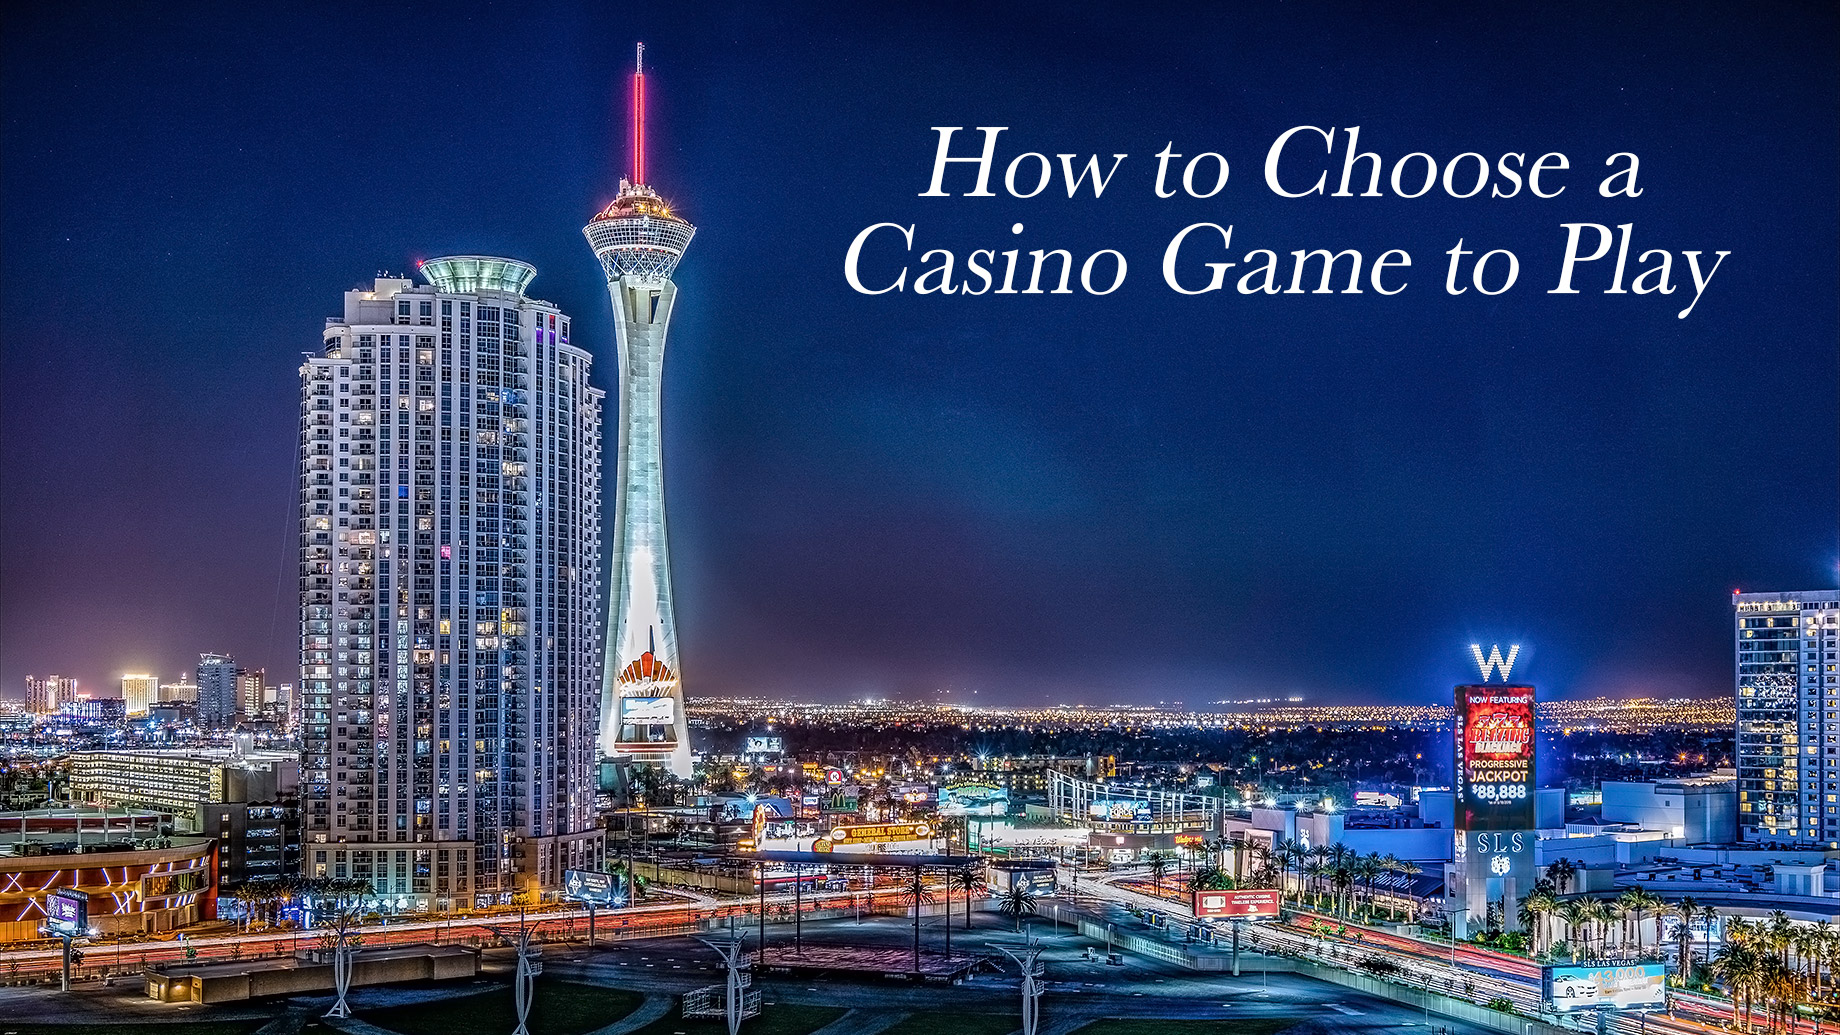 How to Choose a Casino Game to Play